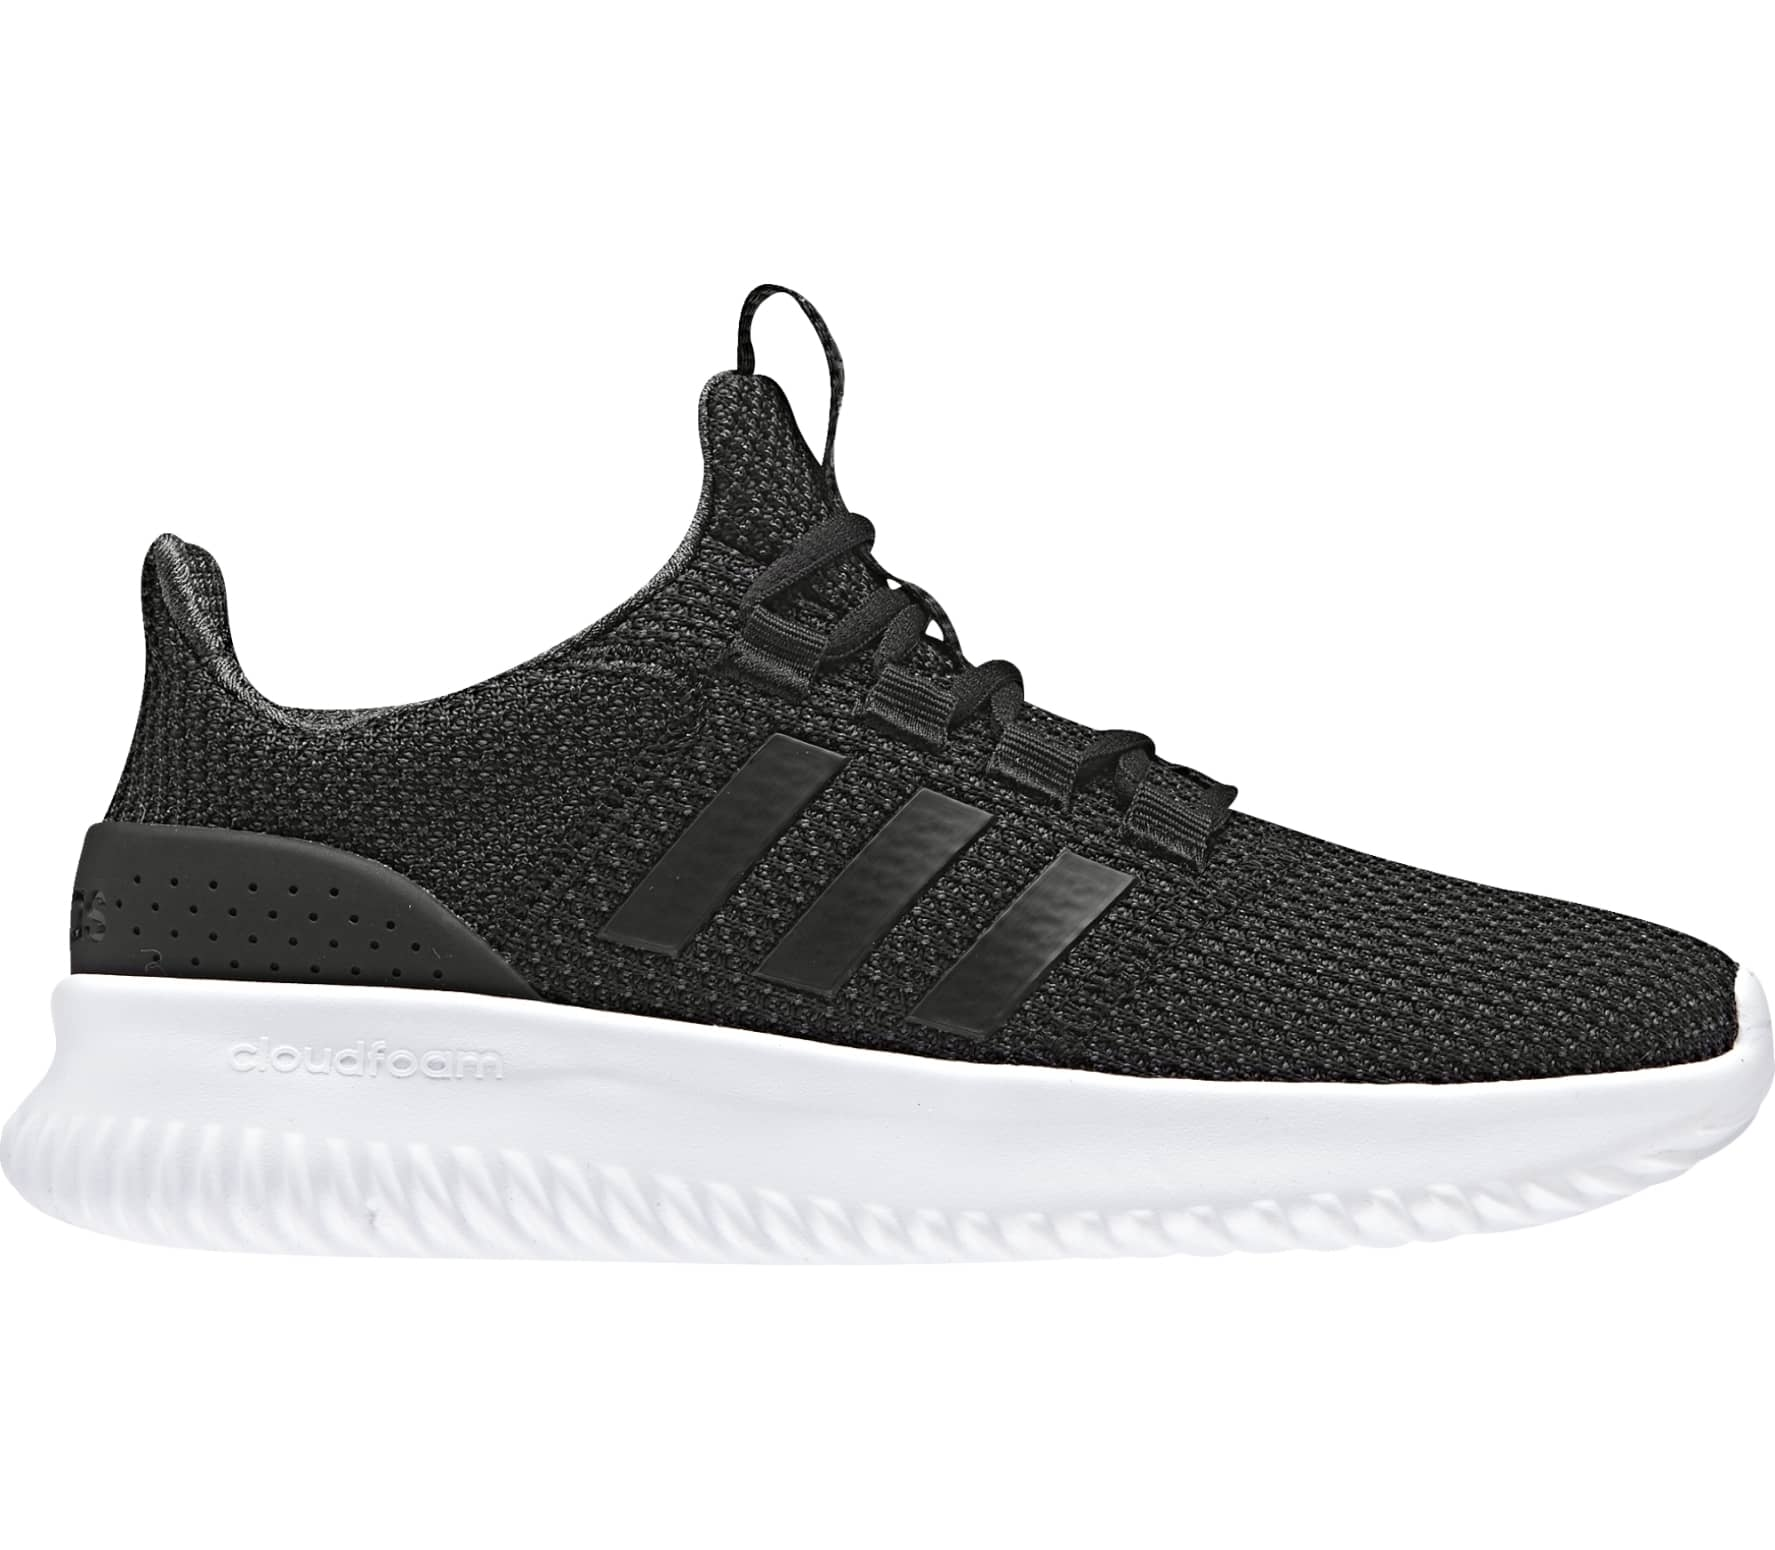 d9aed93a8a9f adidas neo - CF Ultimate children s running shoes (black white ...